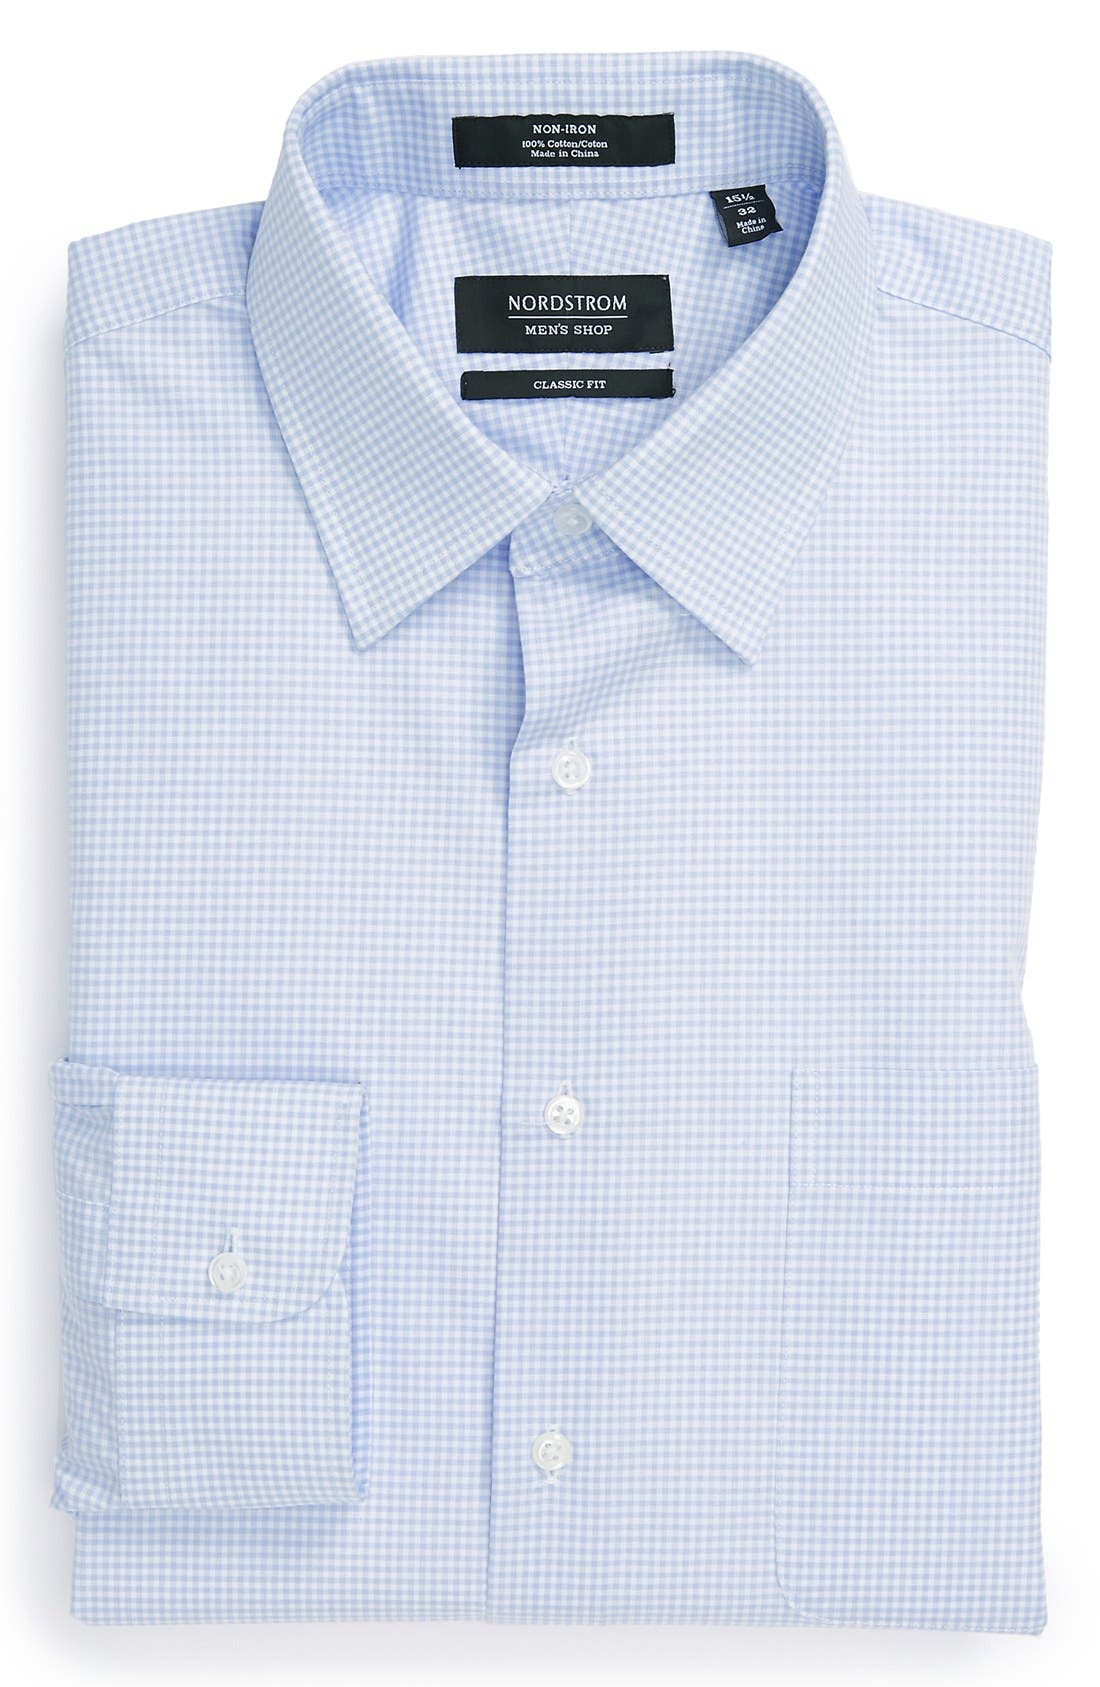 Alternate Image 1 Selected - Nordstrom Classic Fit Non-Iron Check Dress Shirt (Online Only)